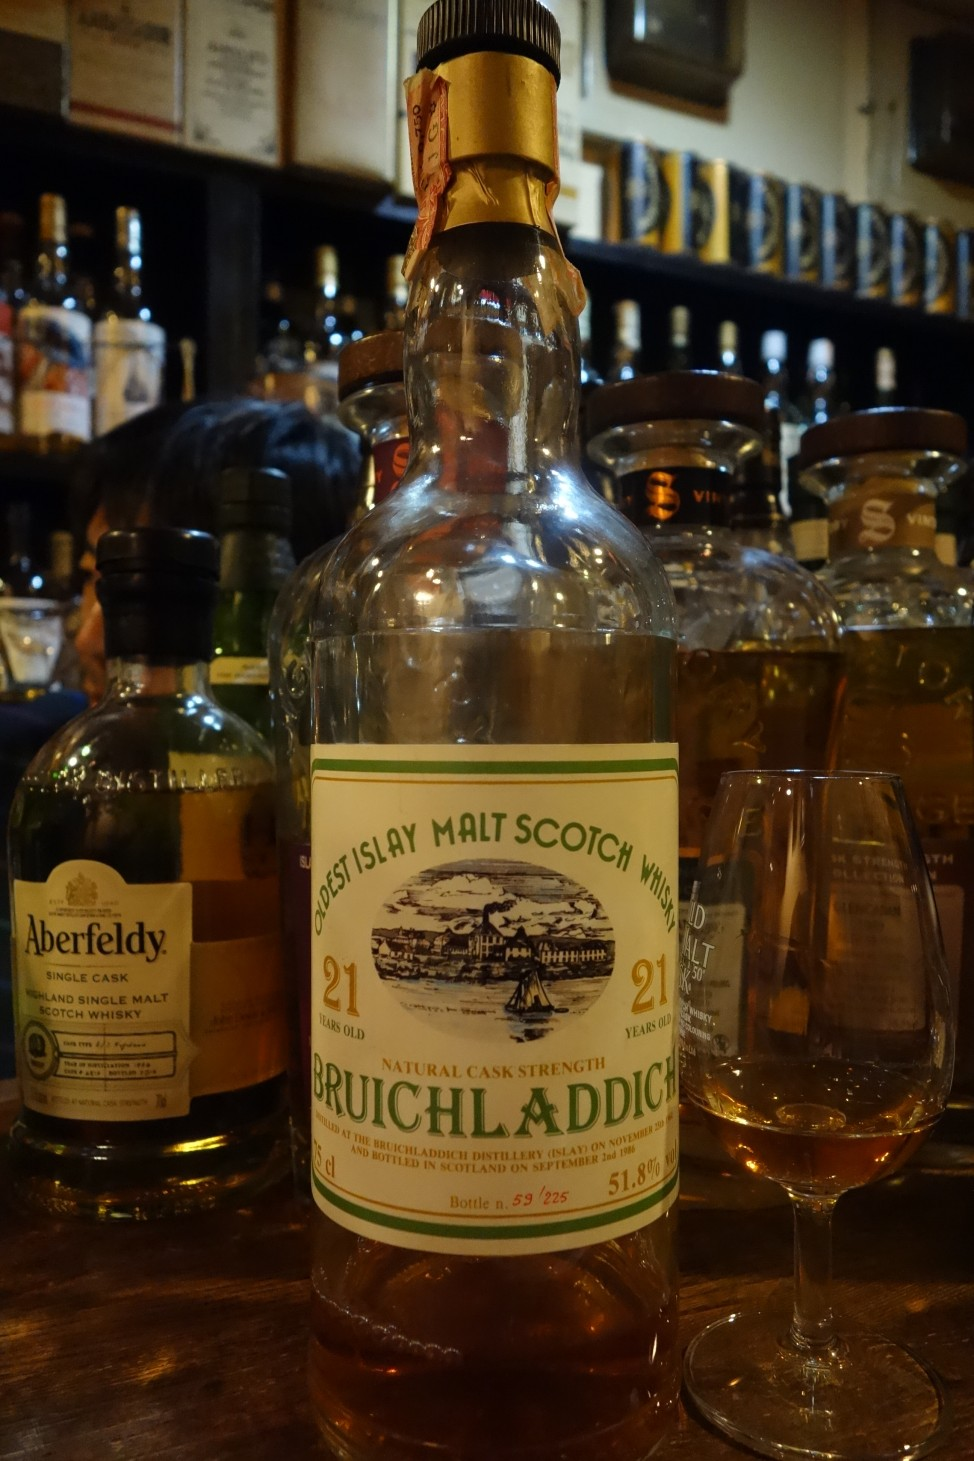 BRUICHLADDICH 1964-1986 21yo INTERTRADE